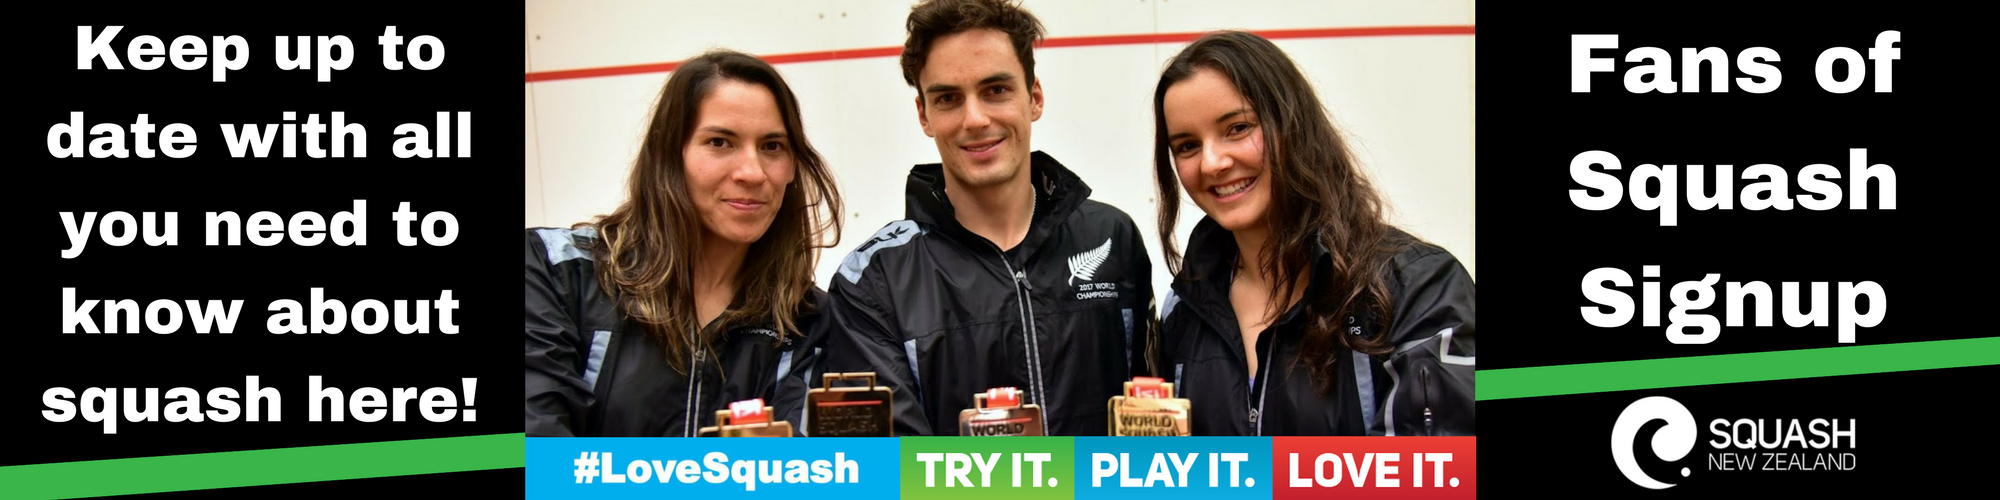 Fans of Squash - SNZ Website Header SIgnup